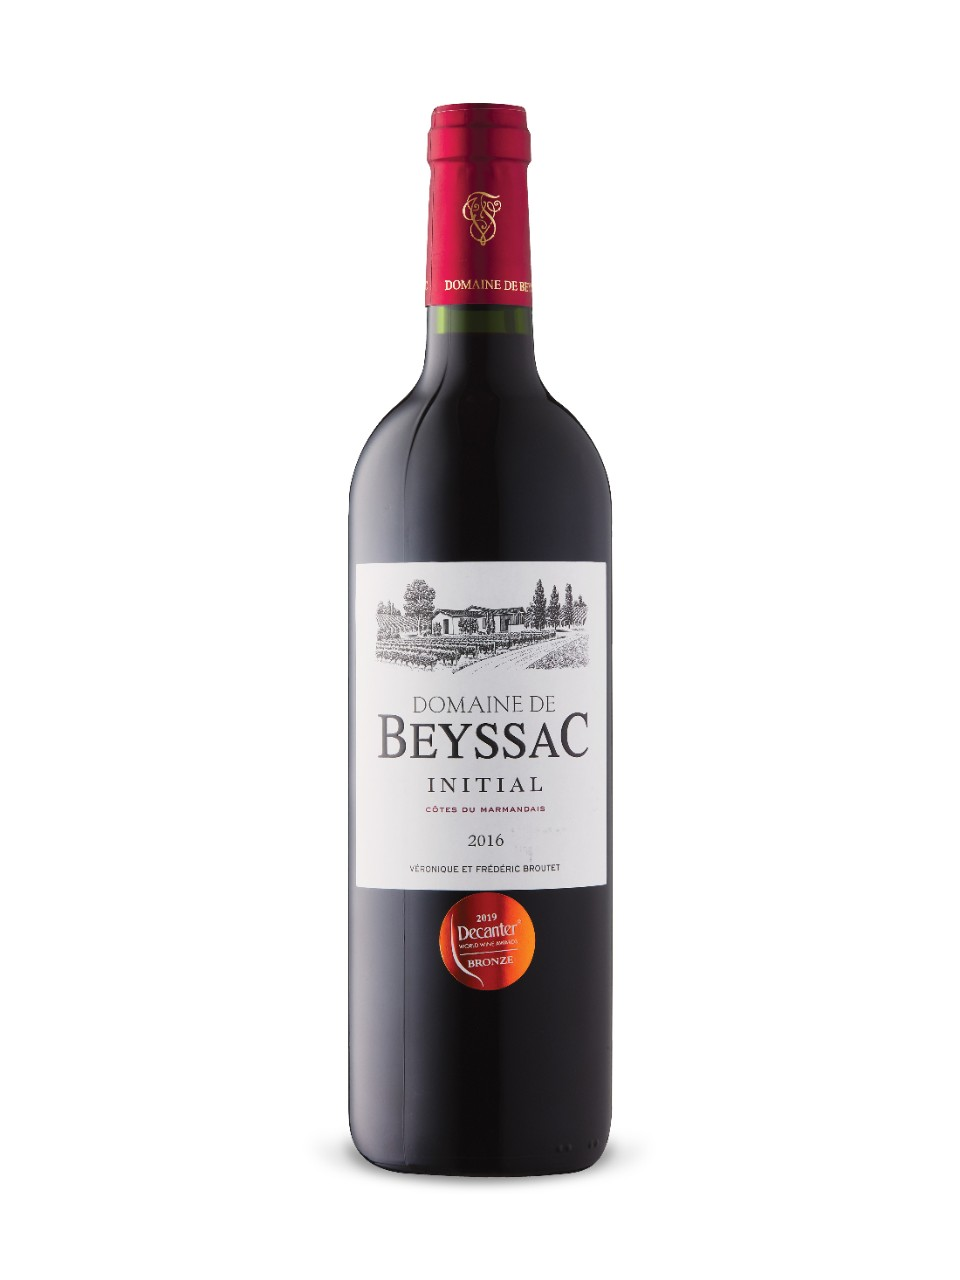 Domaine de Beyssac Initial 2016 from LCBO